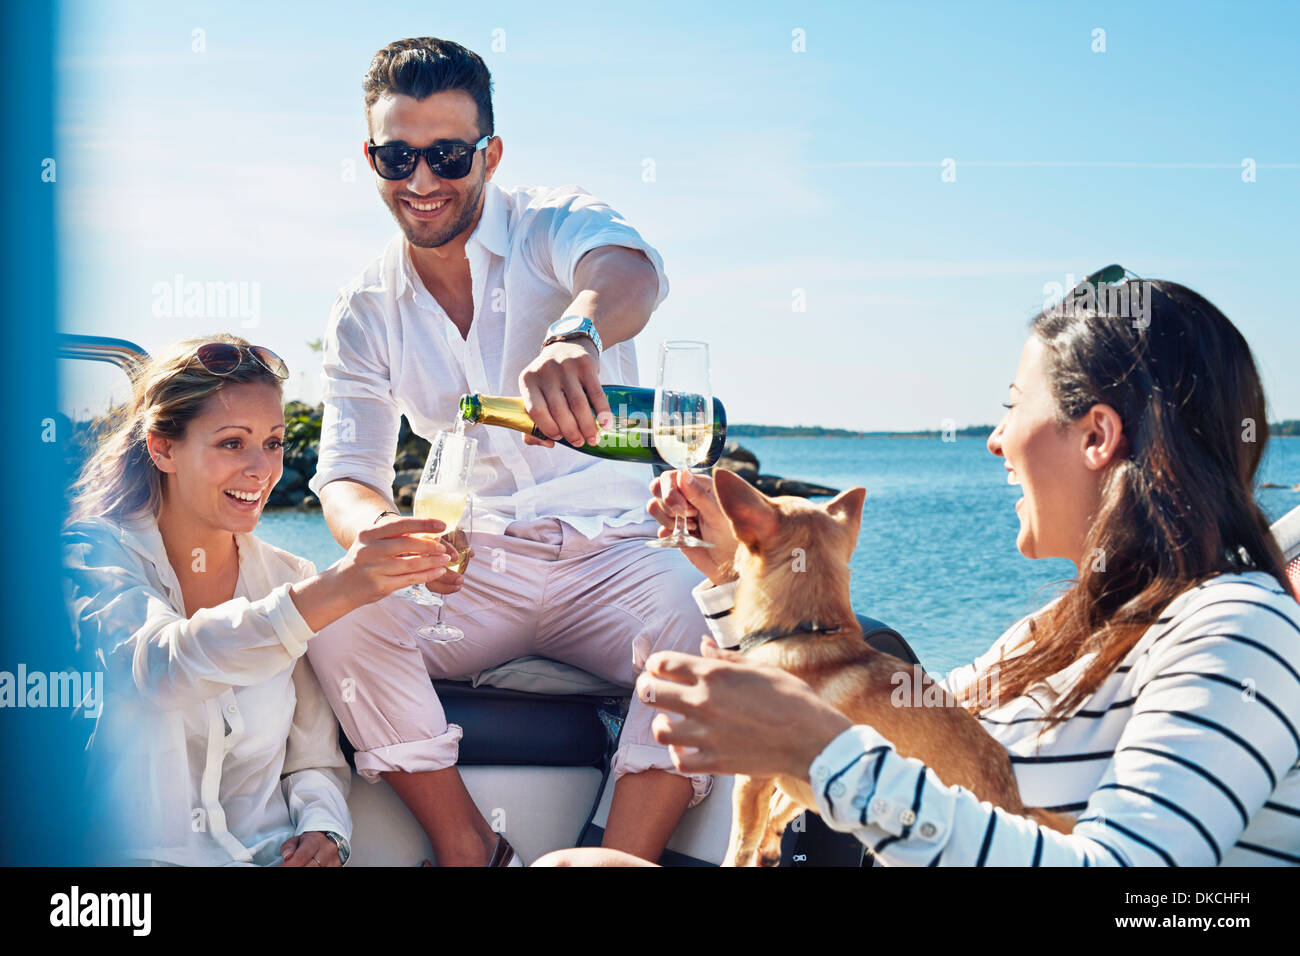 Man pouring champagne for young women on boat, Gavle, Sweden - Stock Image